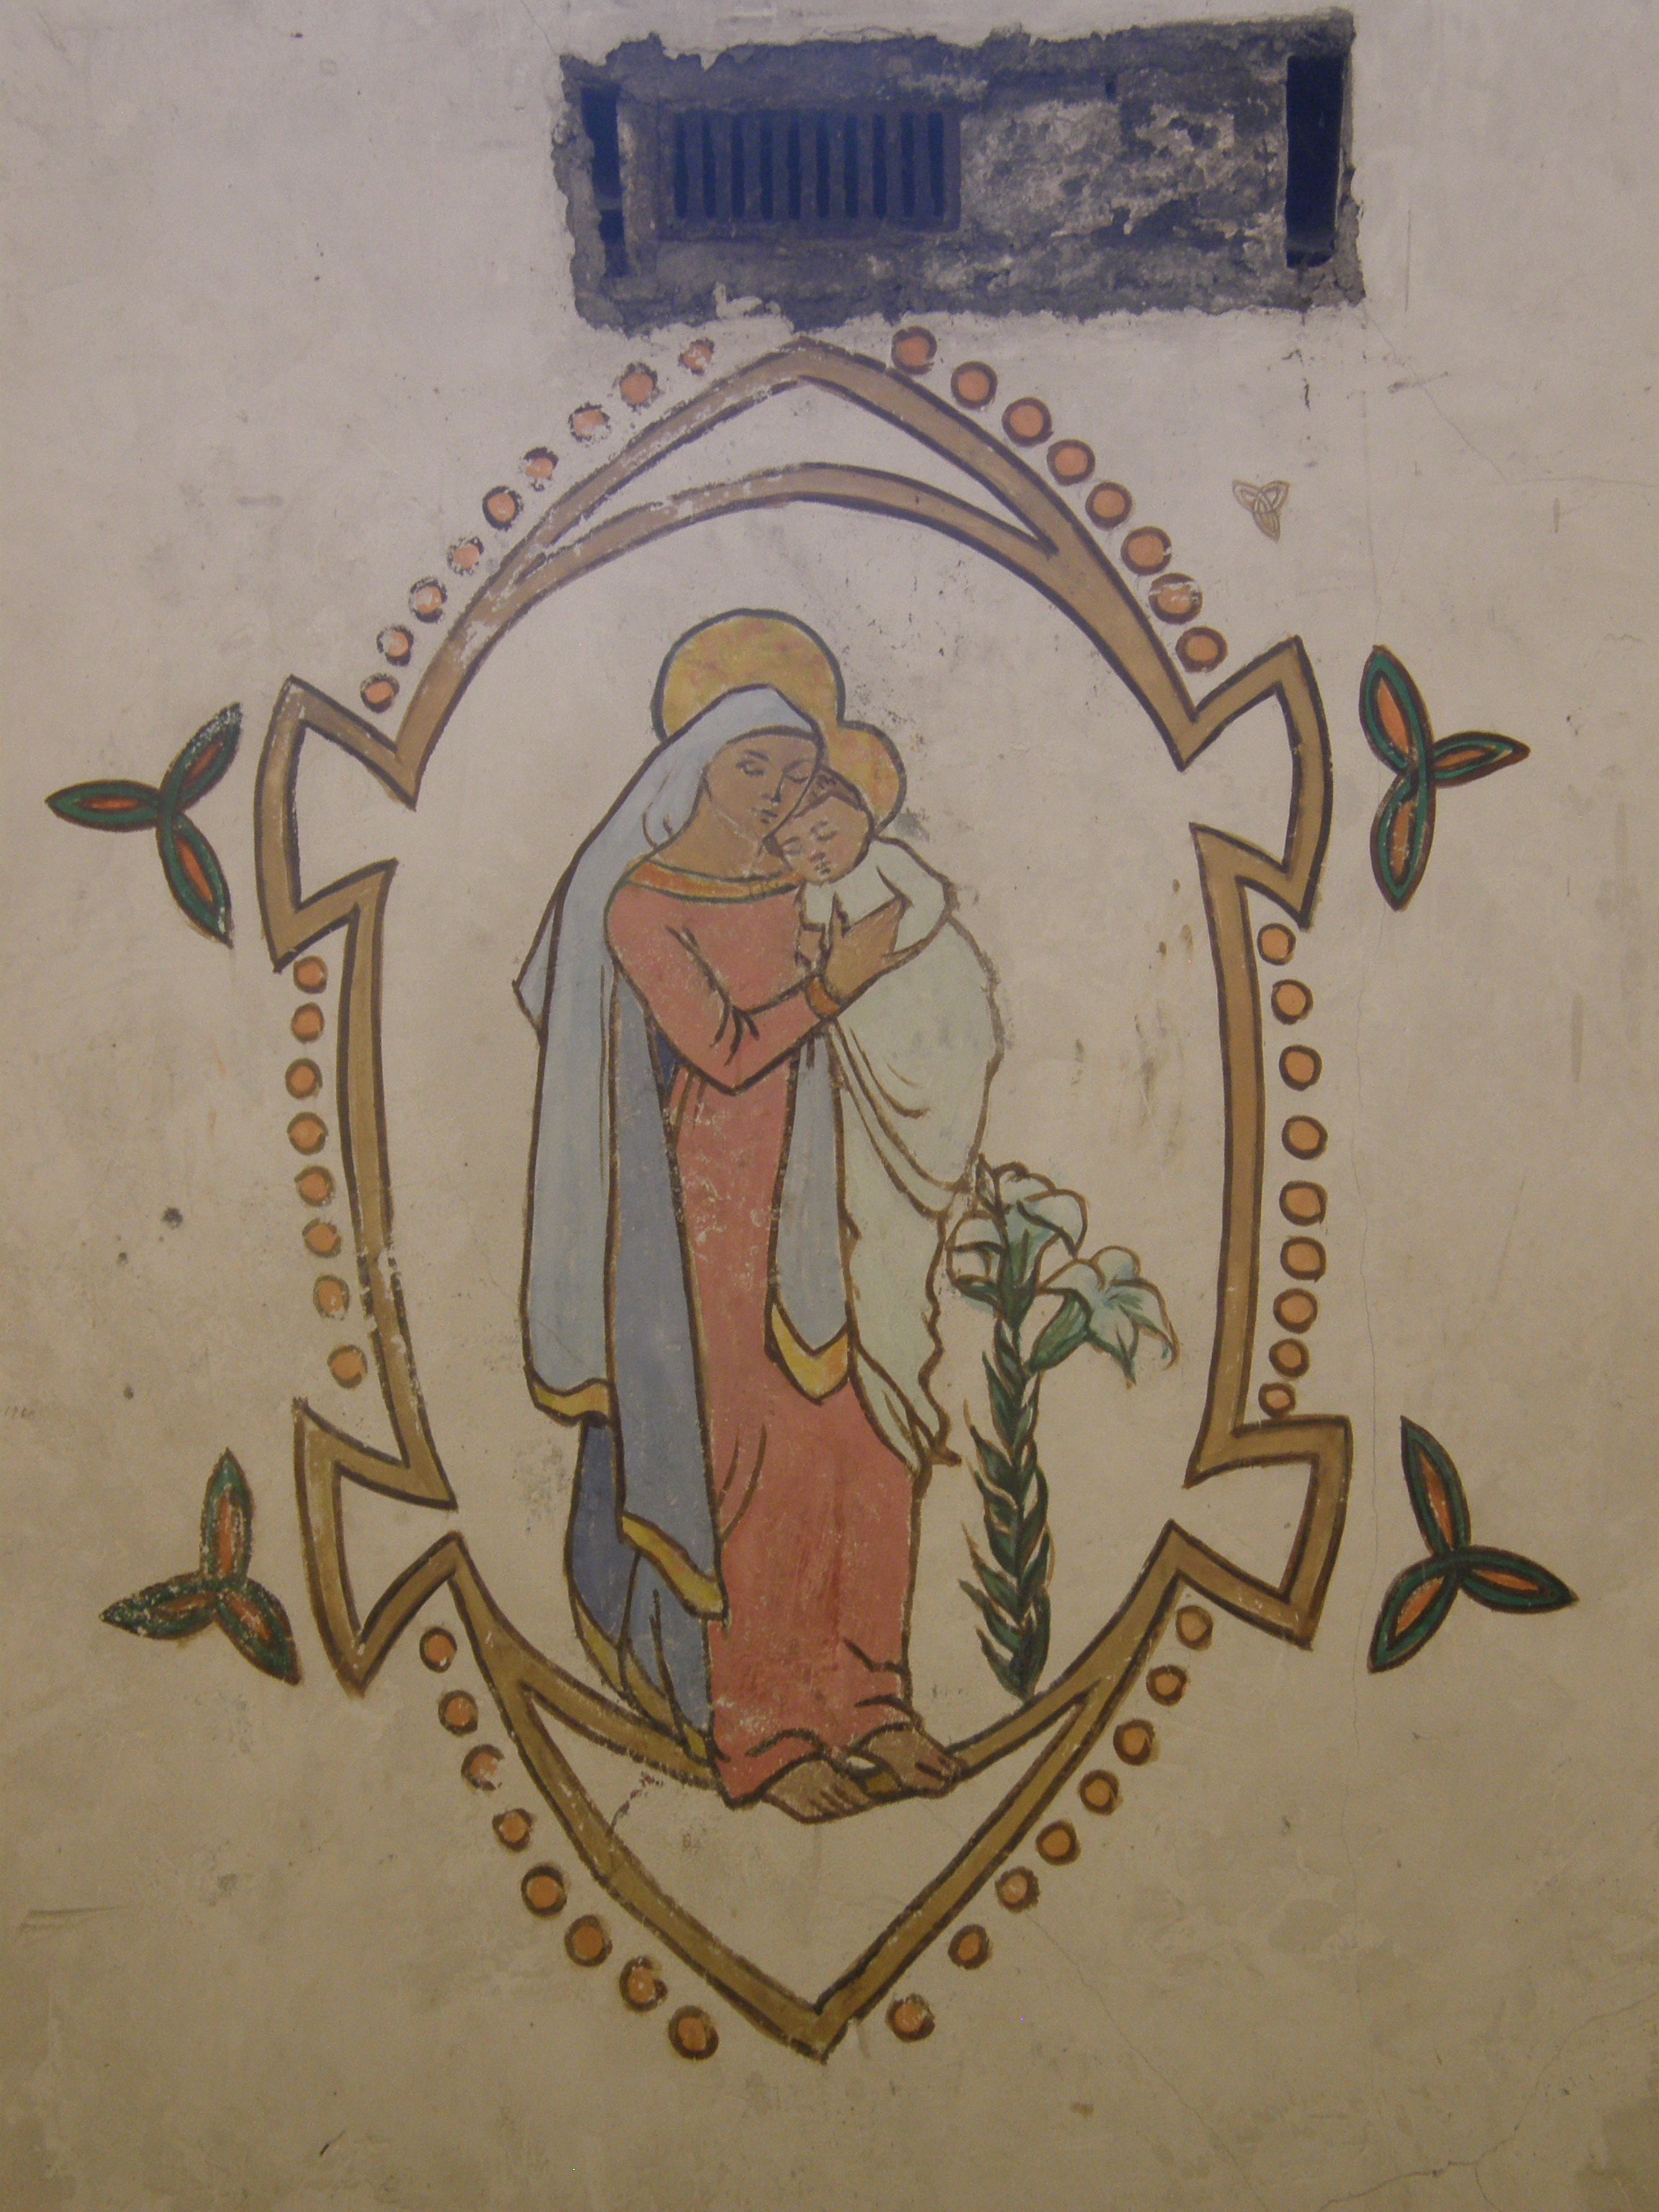 Mural of the Virgin Mary Painted on her Cell Wall by Grace Gifford, Kilmainham Gaol